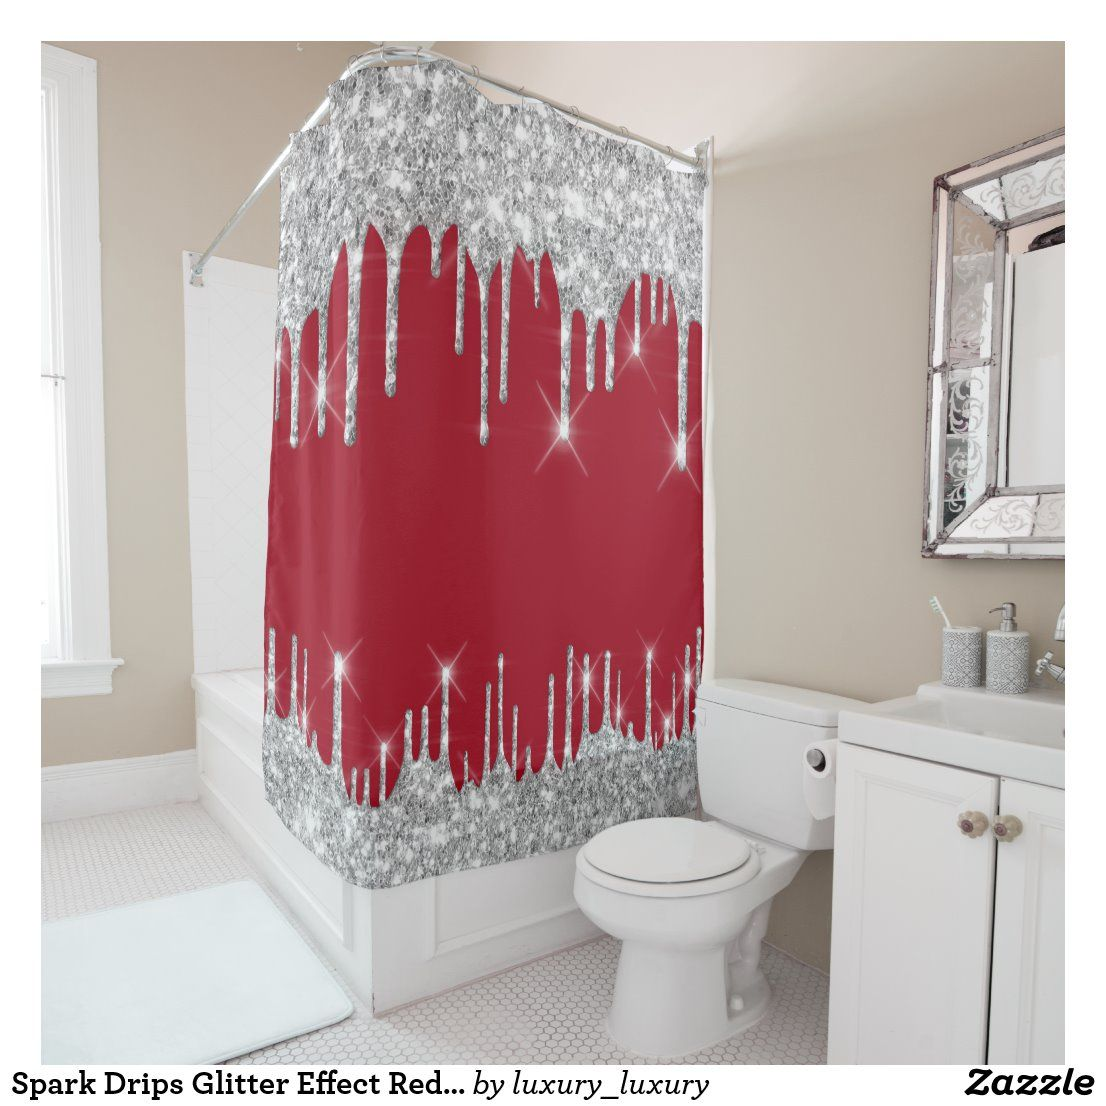 Spark Drips Glitter Effect Red Wine Silver Gray Shower Curtain